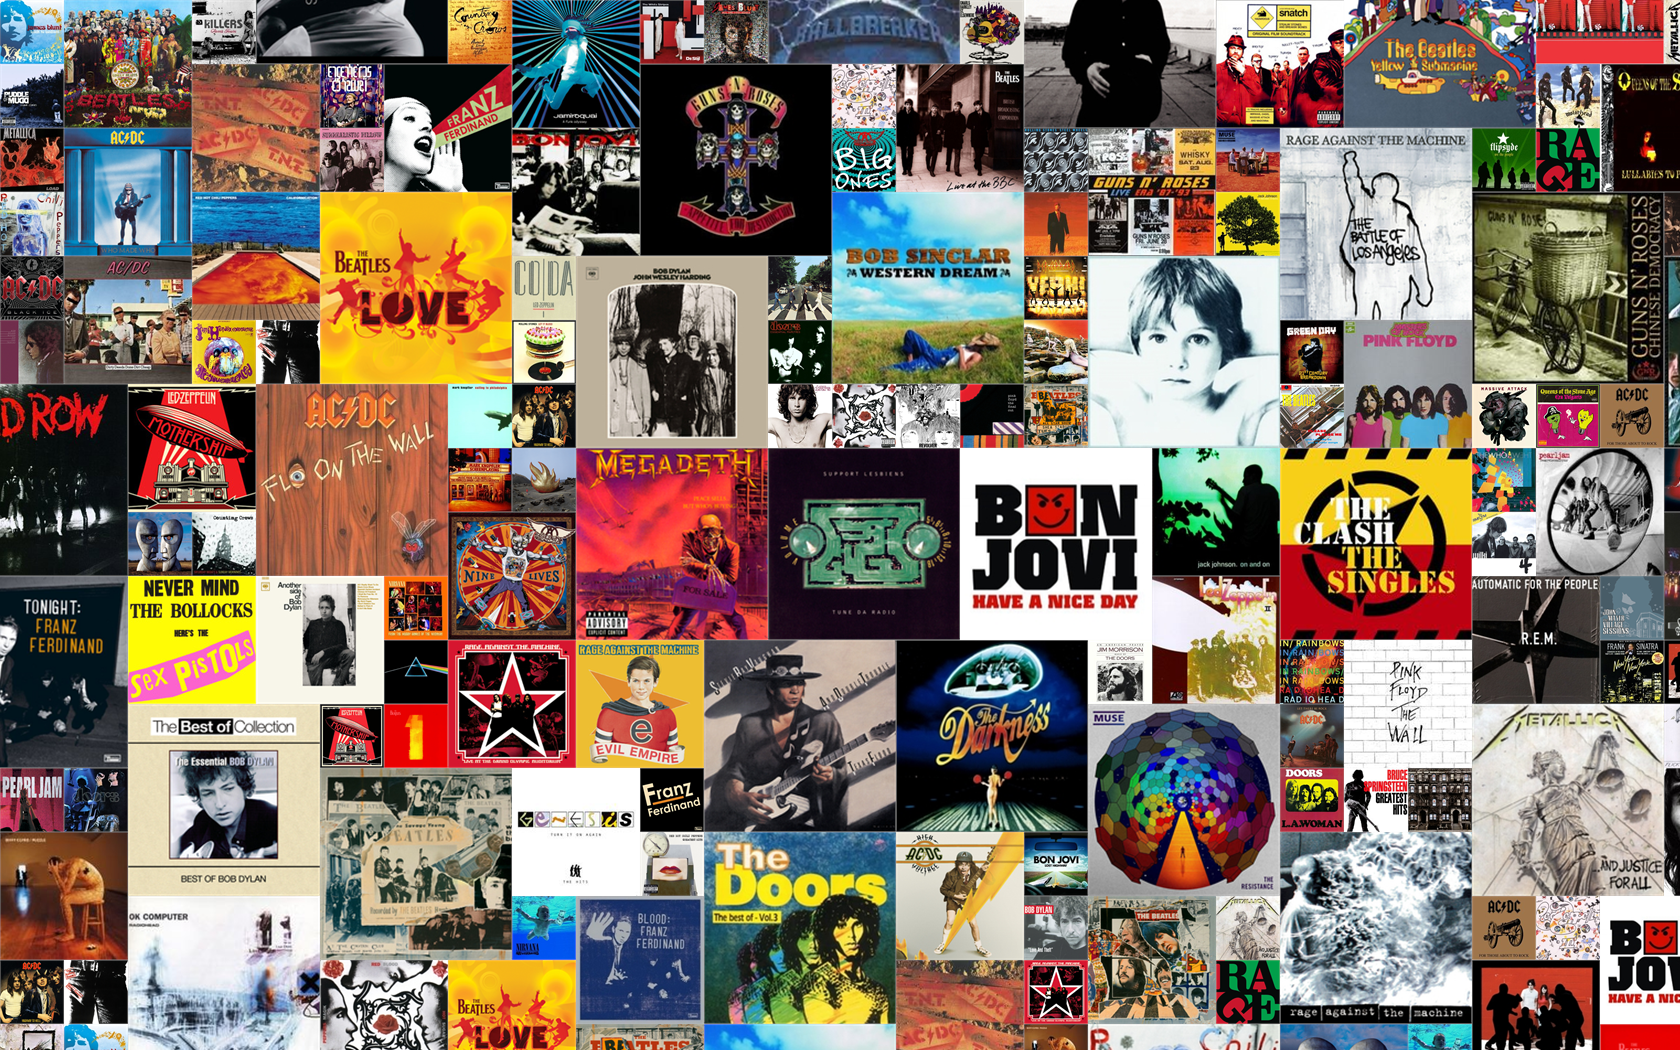 Free Download Album Covers Cover Your Wall By 13lackhat 1680x1050